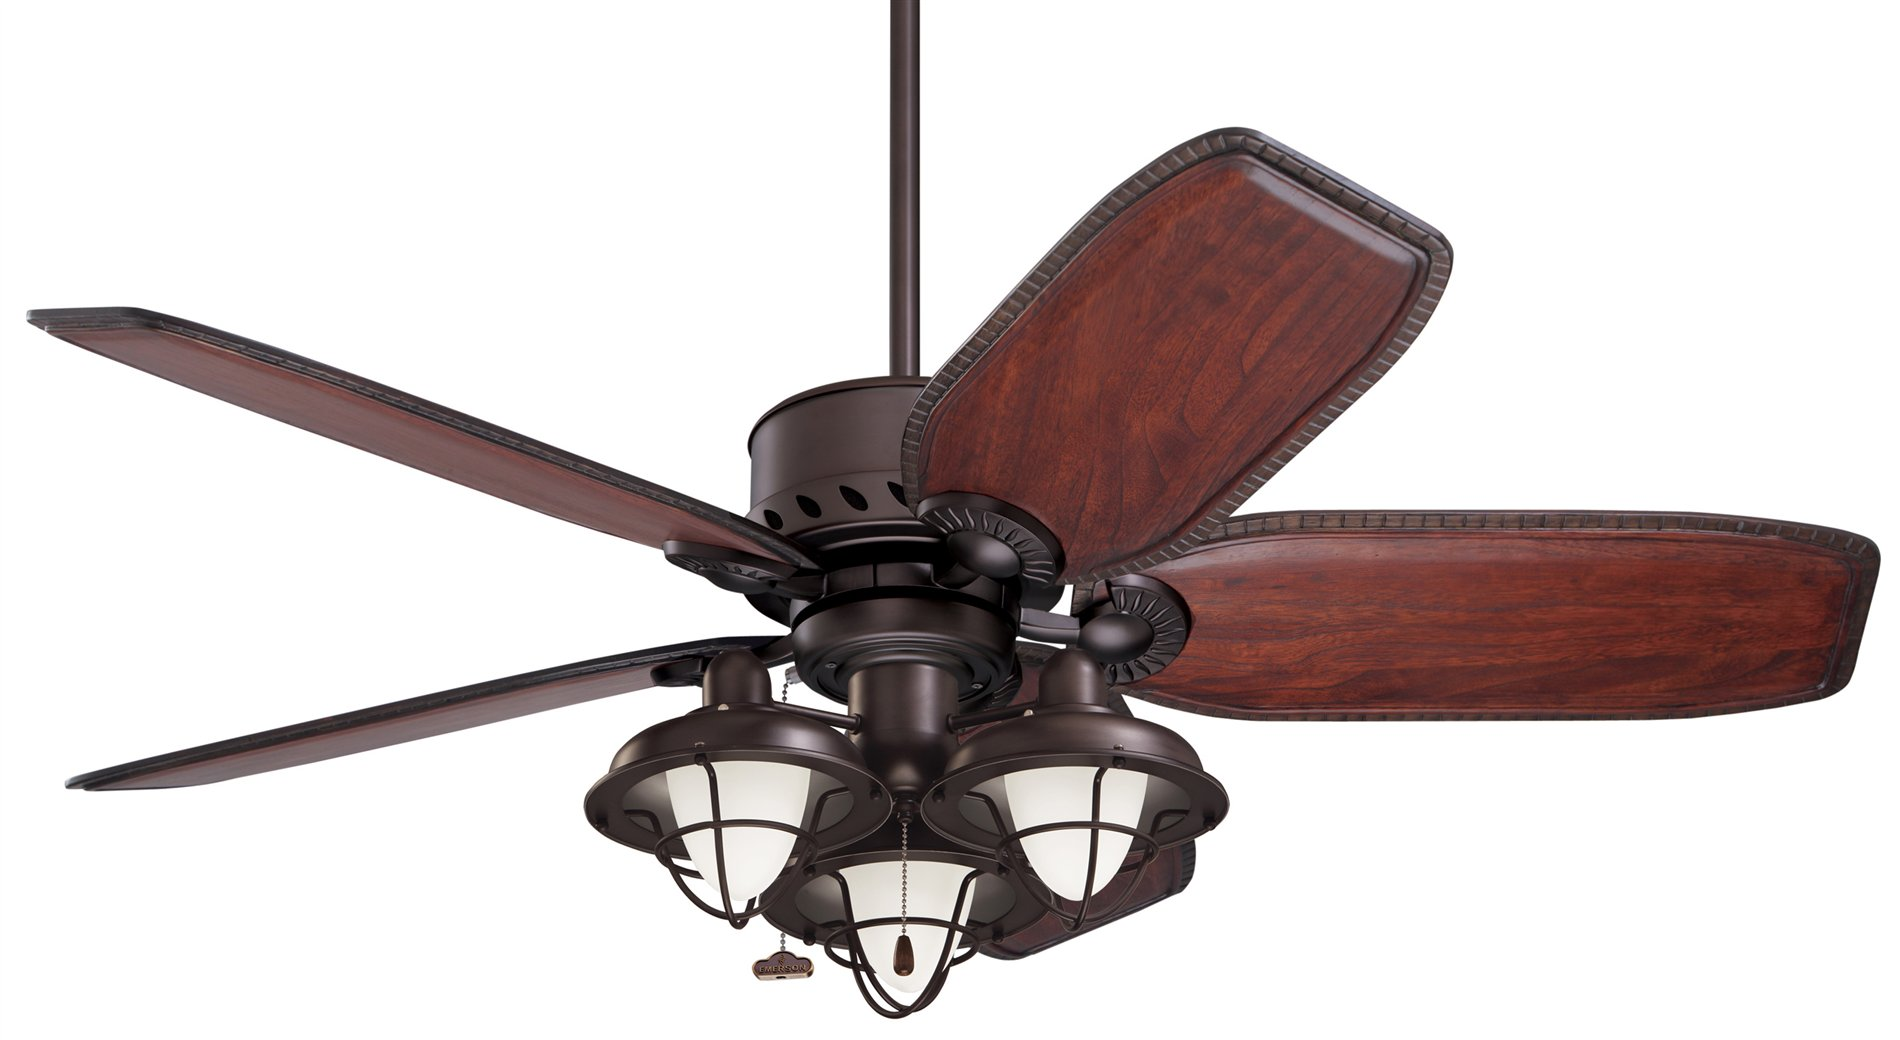 emerson boardwalk cage transitional ceiling fan light kit em lk40. Black Bedroom Furniture Sets. Home Design Ideas